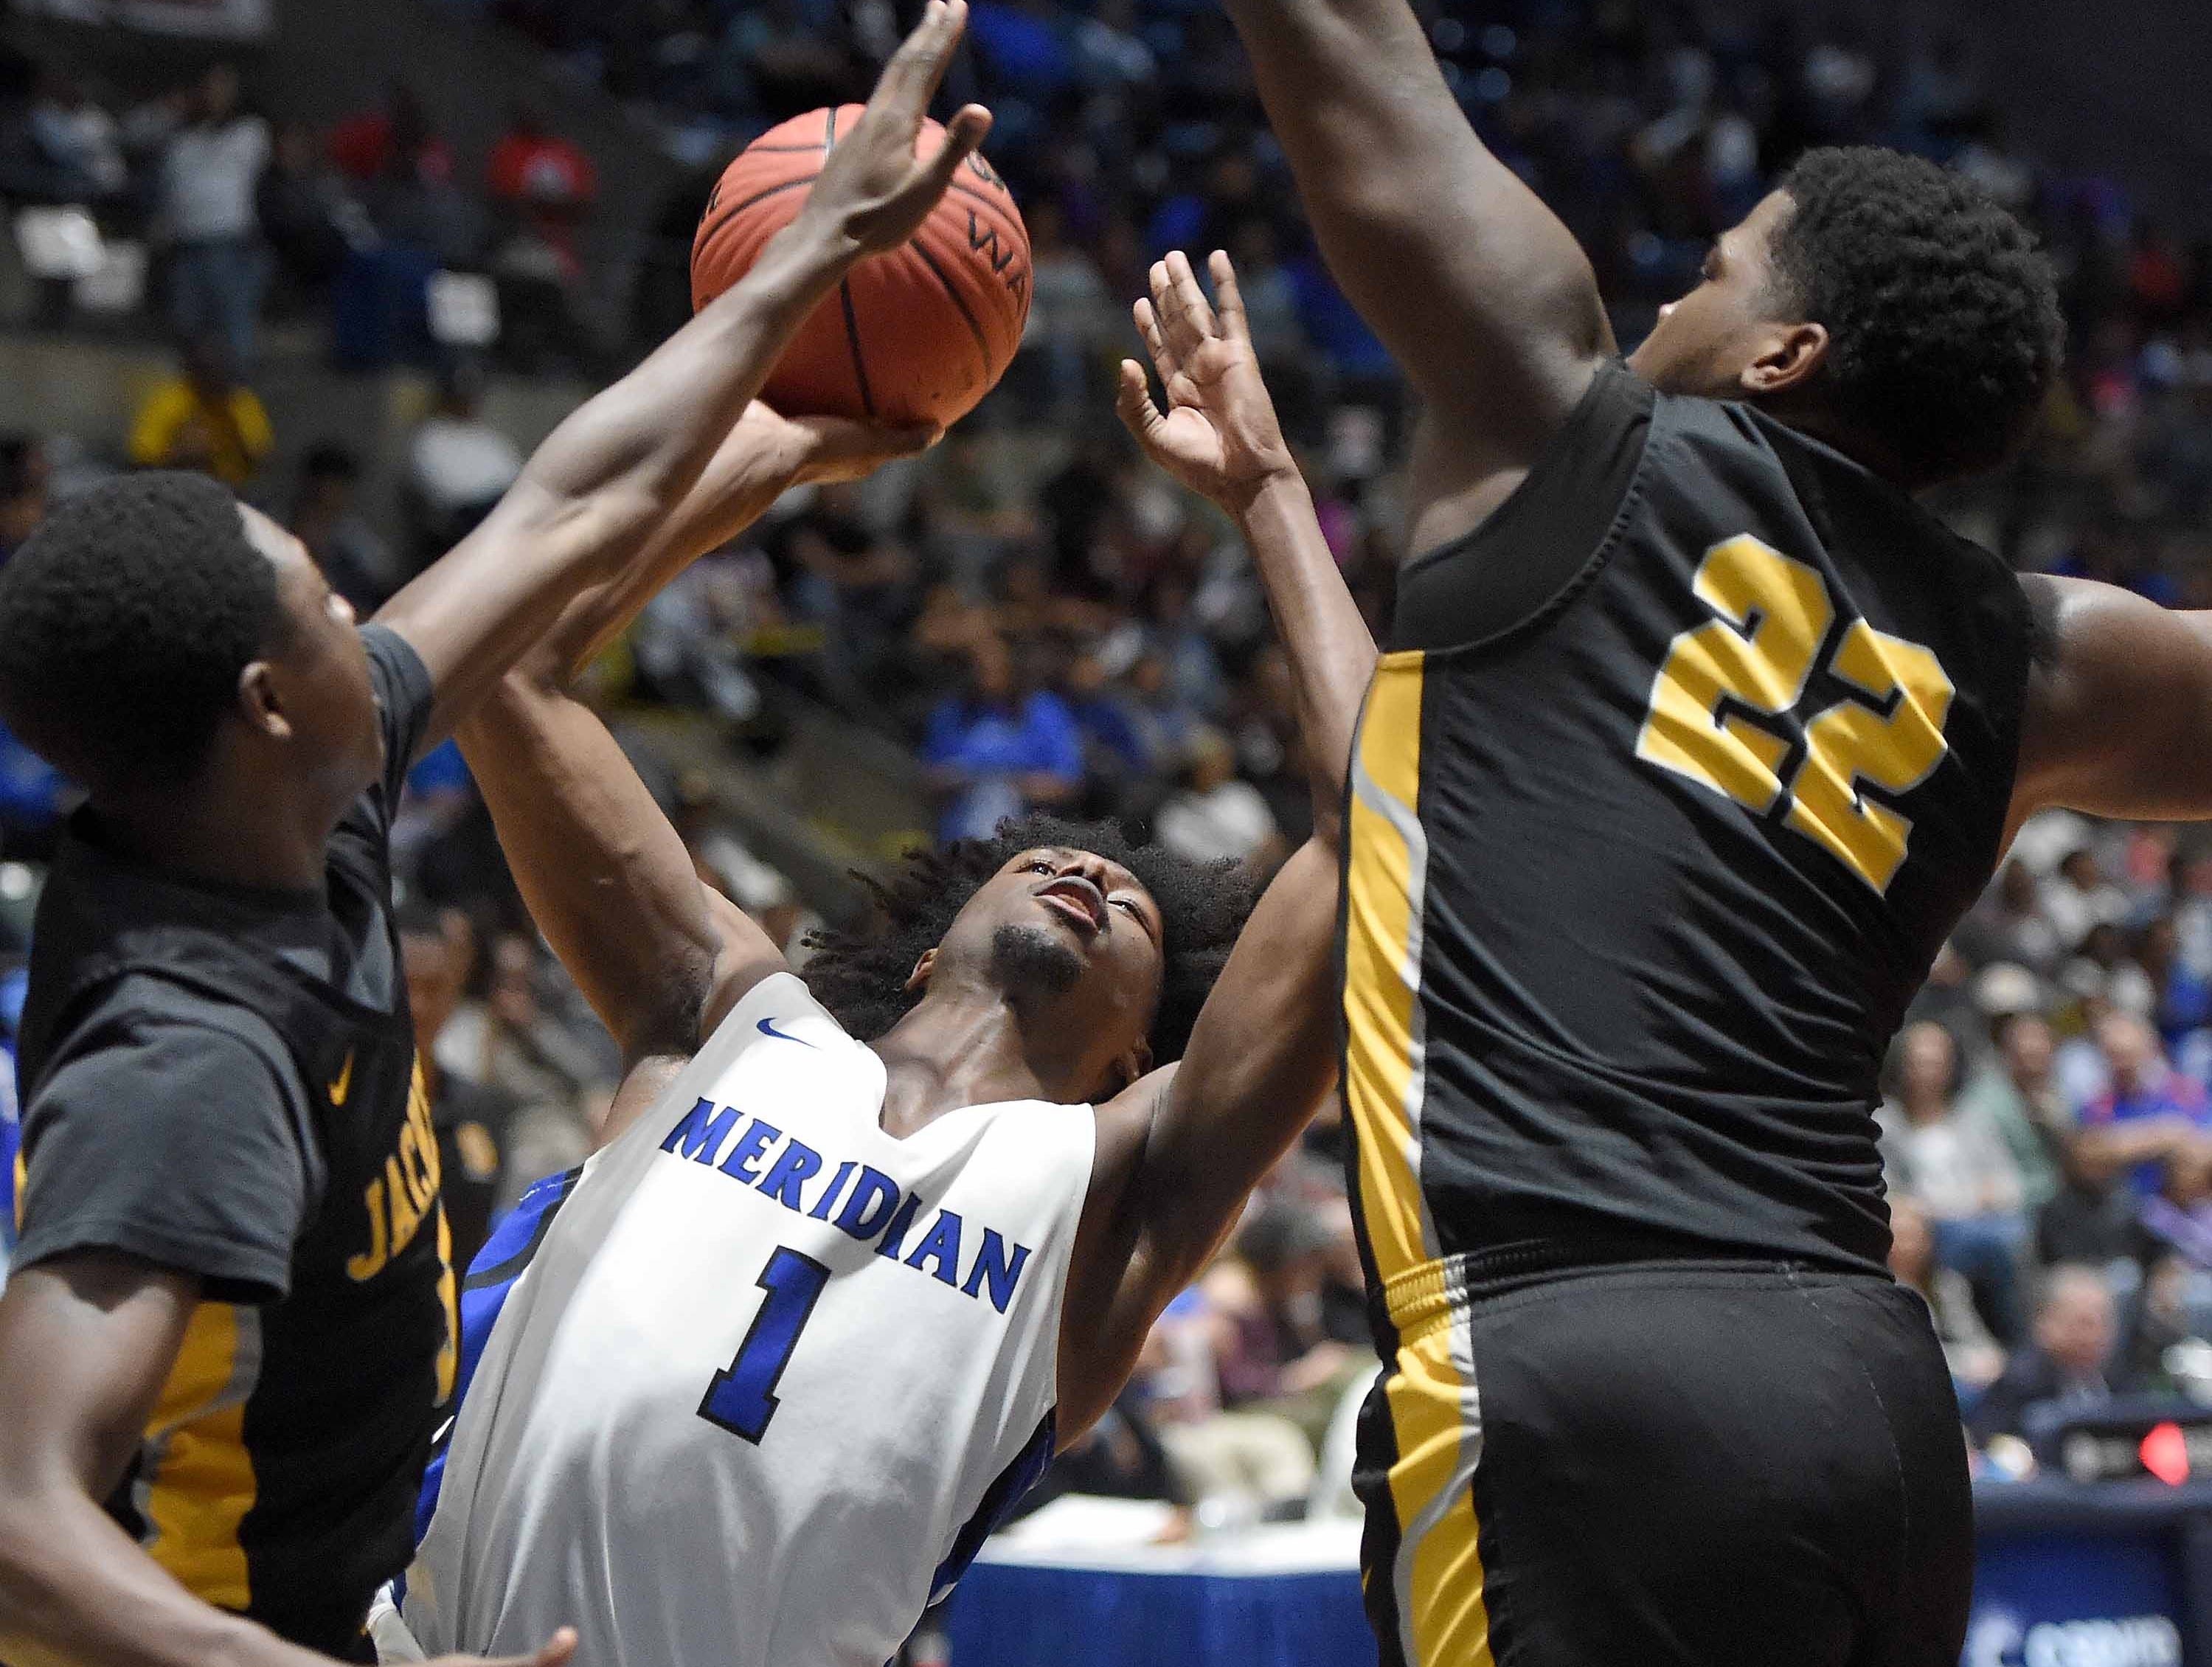 Meridian's Traemond PIttman (1) shoots against Starkville in the Class 6A finals of the MHSAA C Spire State Basketball Championships at the Mississippi Coliseum in Jackson, Miss., on Saturday, March 9, 2019.